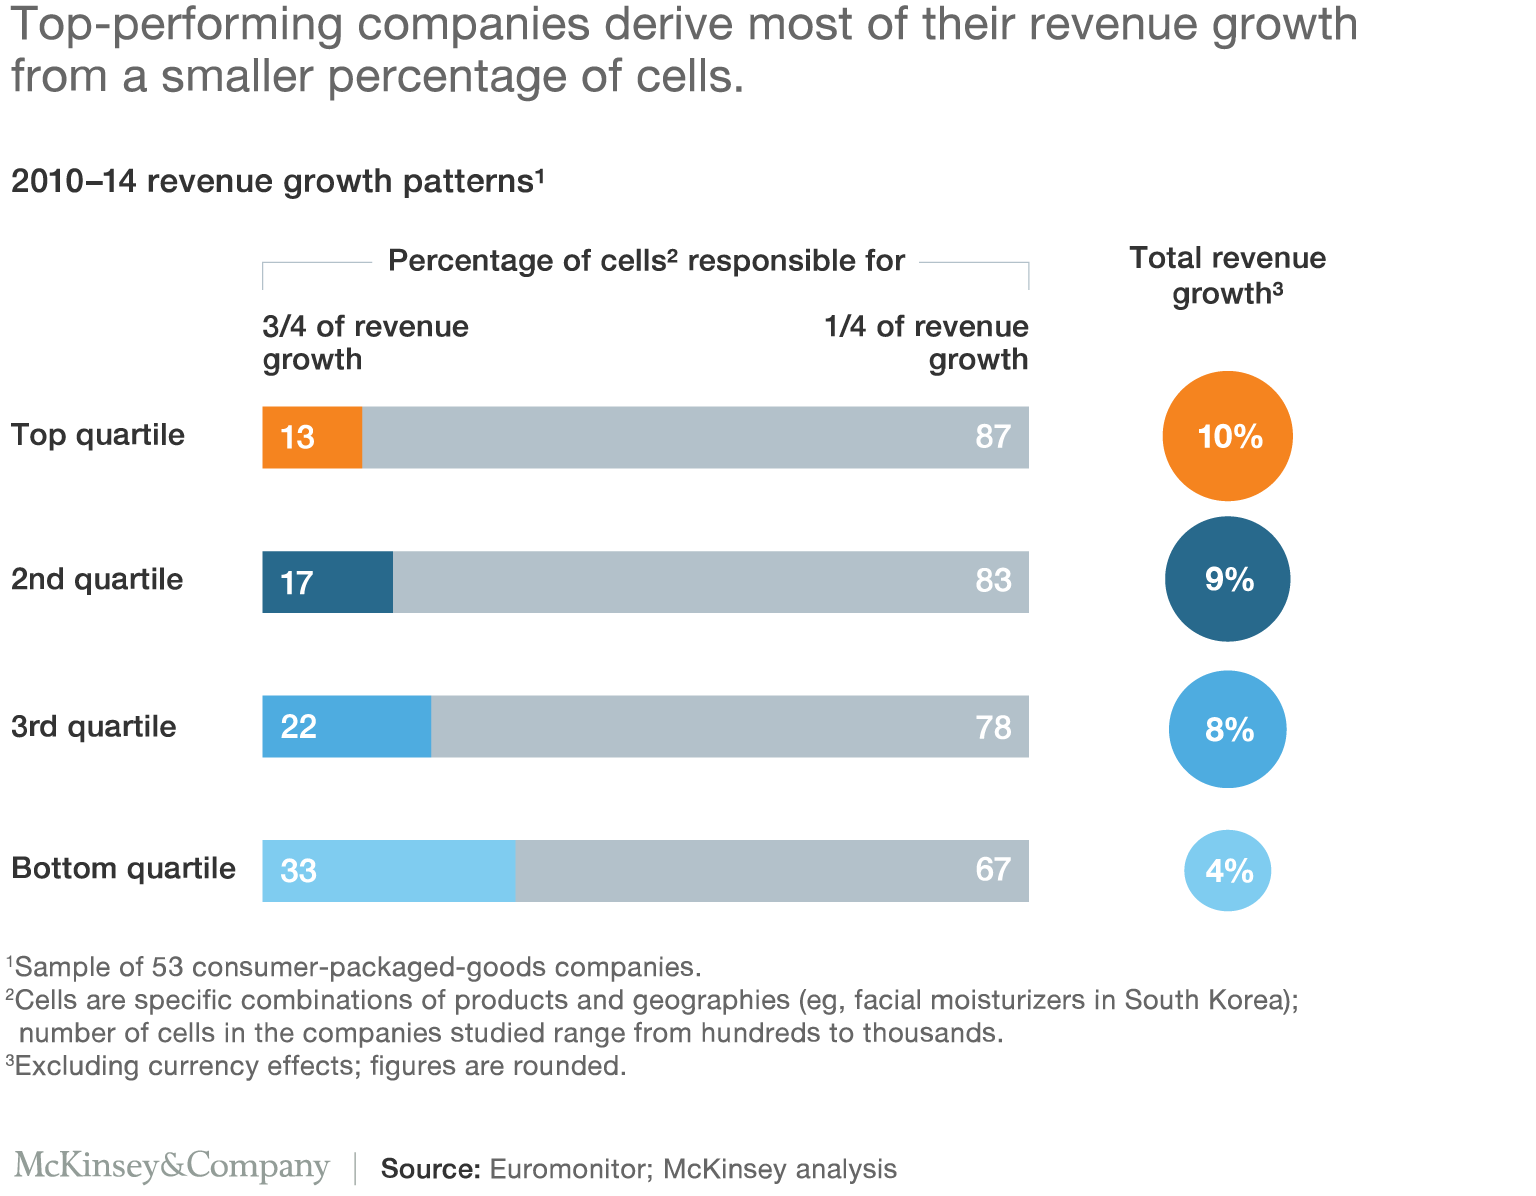 Top-performing companies derive most of their revenue growth from a smaller percentage of cells.